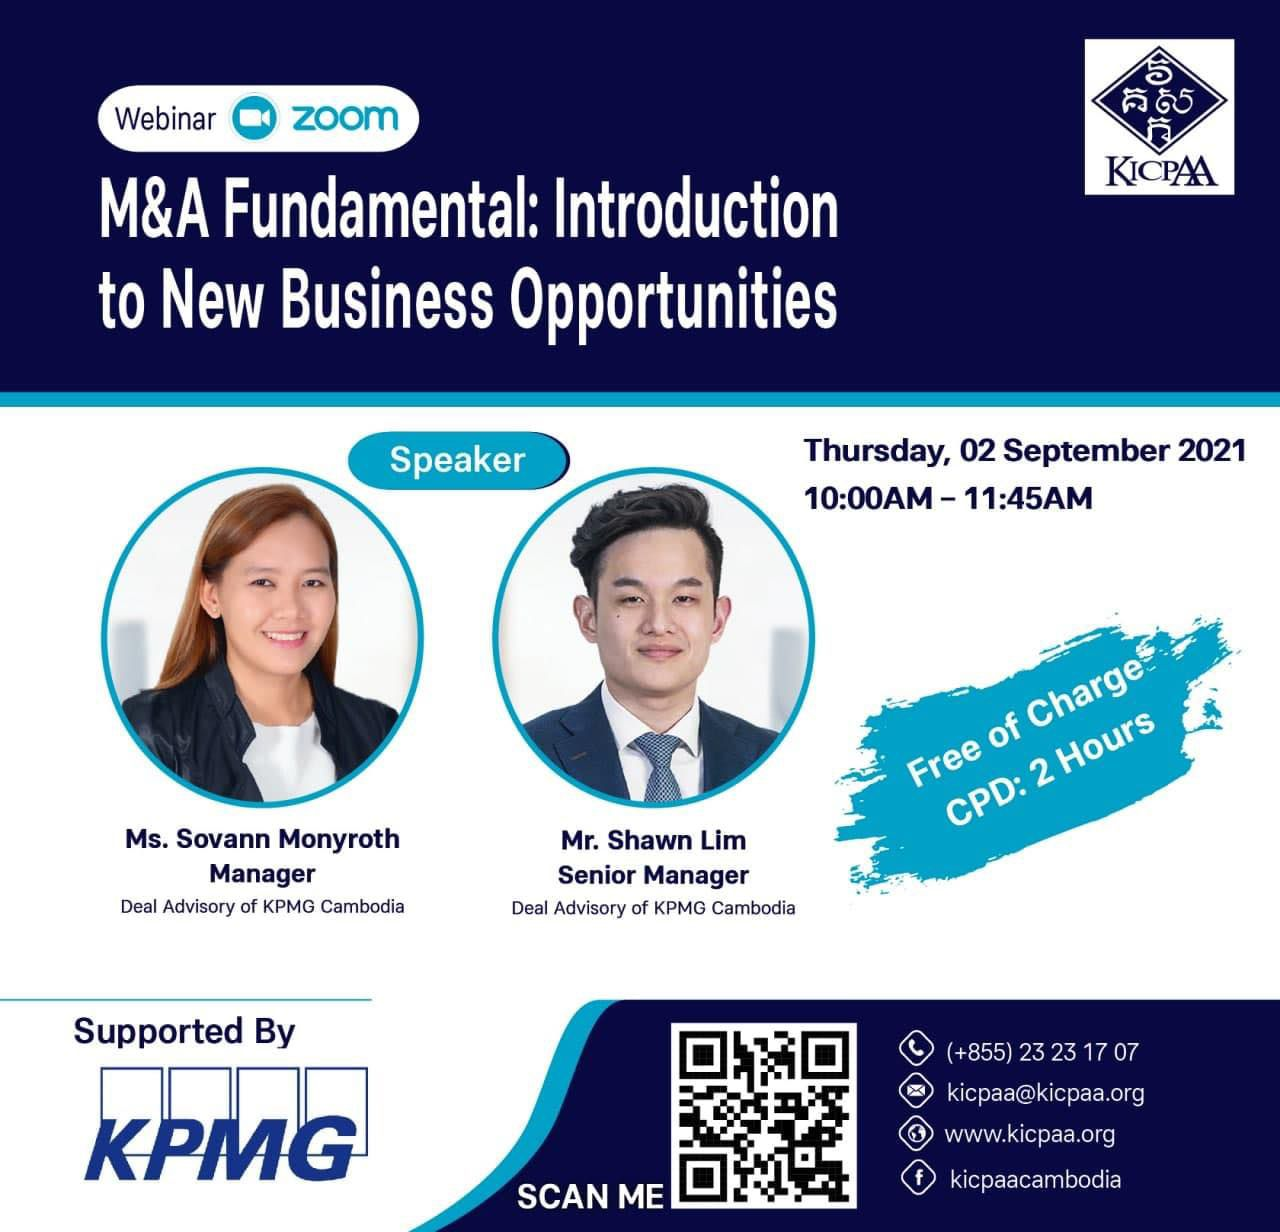 kpmg-kicpaa-introduction-to-new-business-opportunities